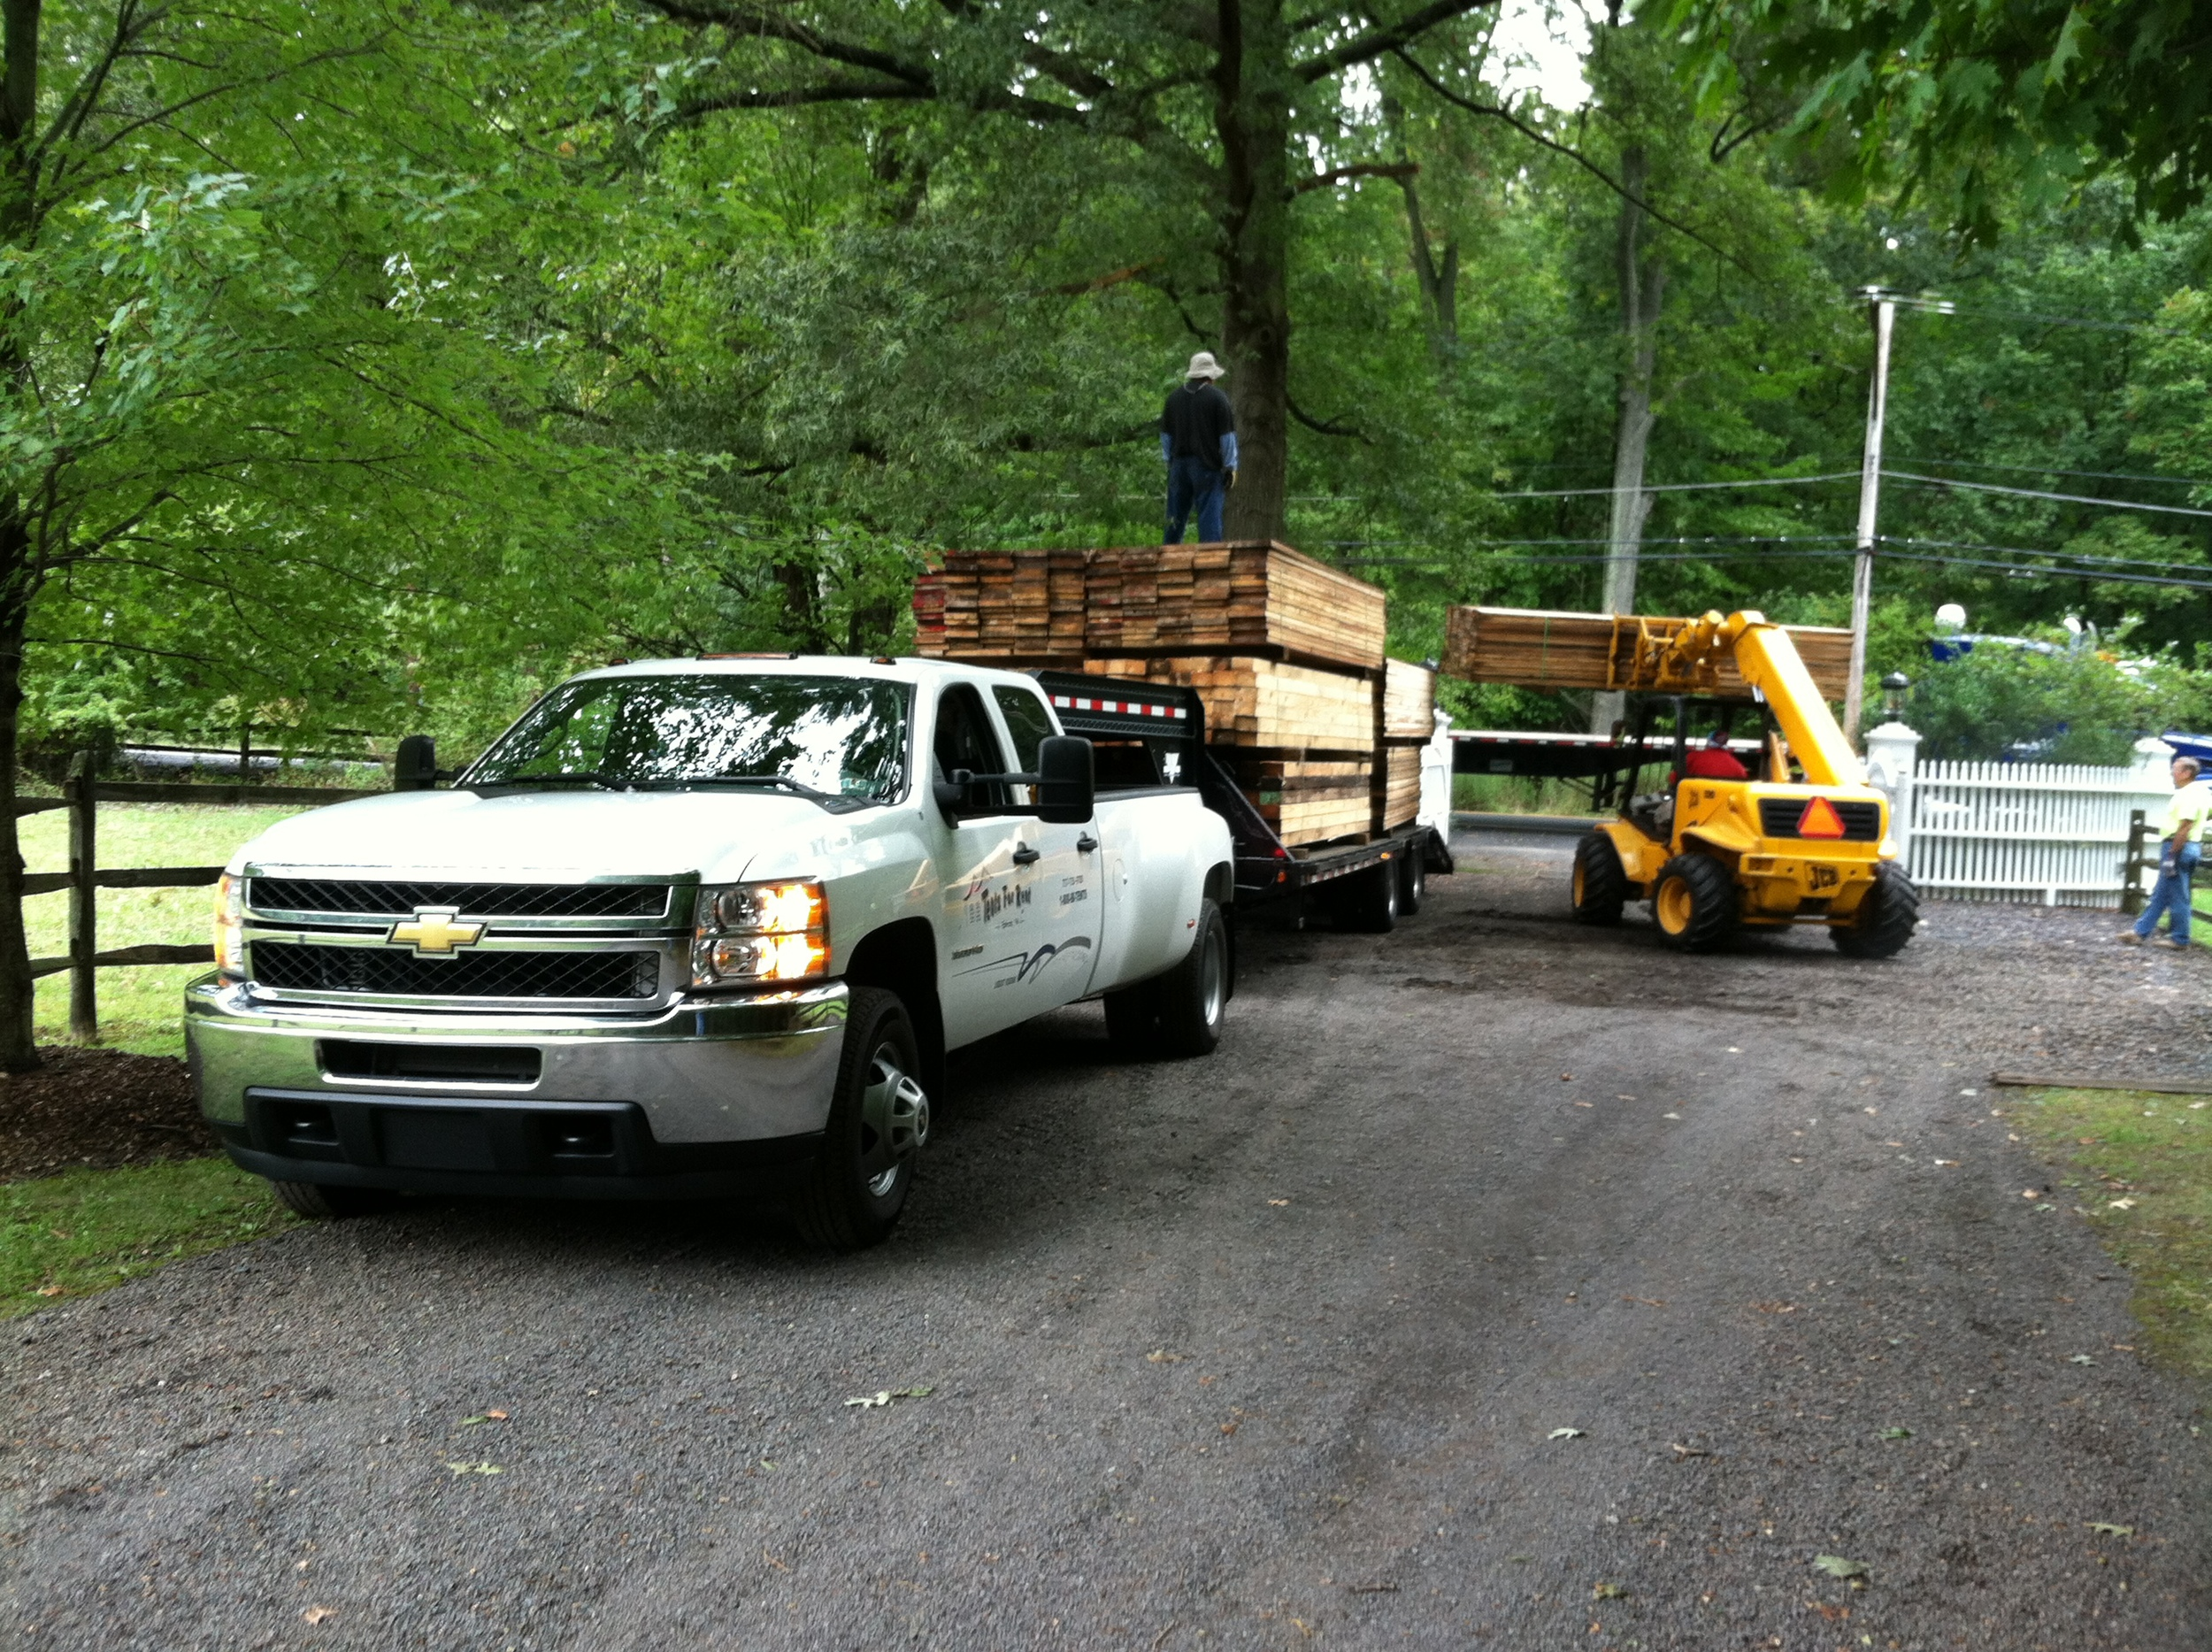 Large trucks could not access the job site